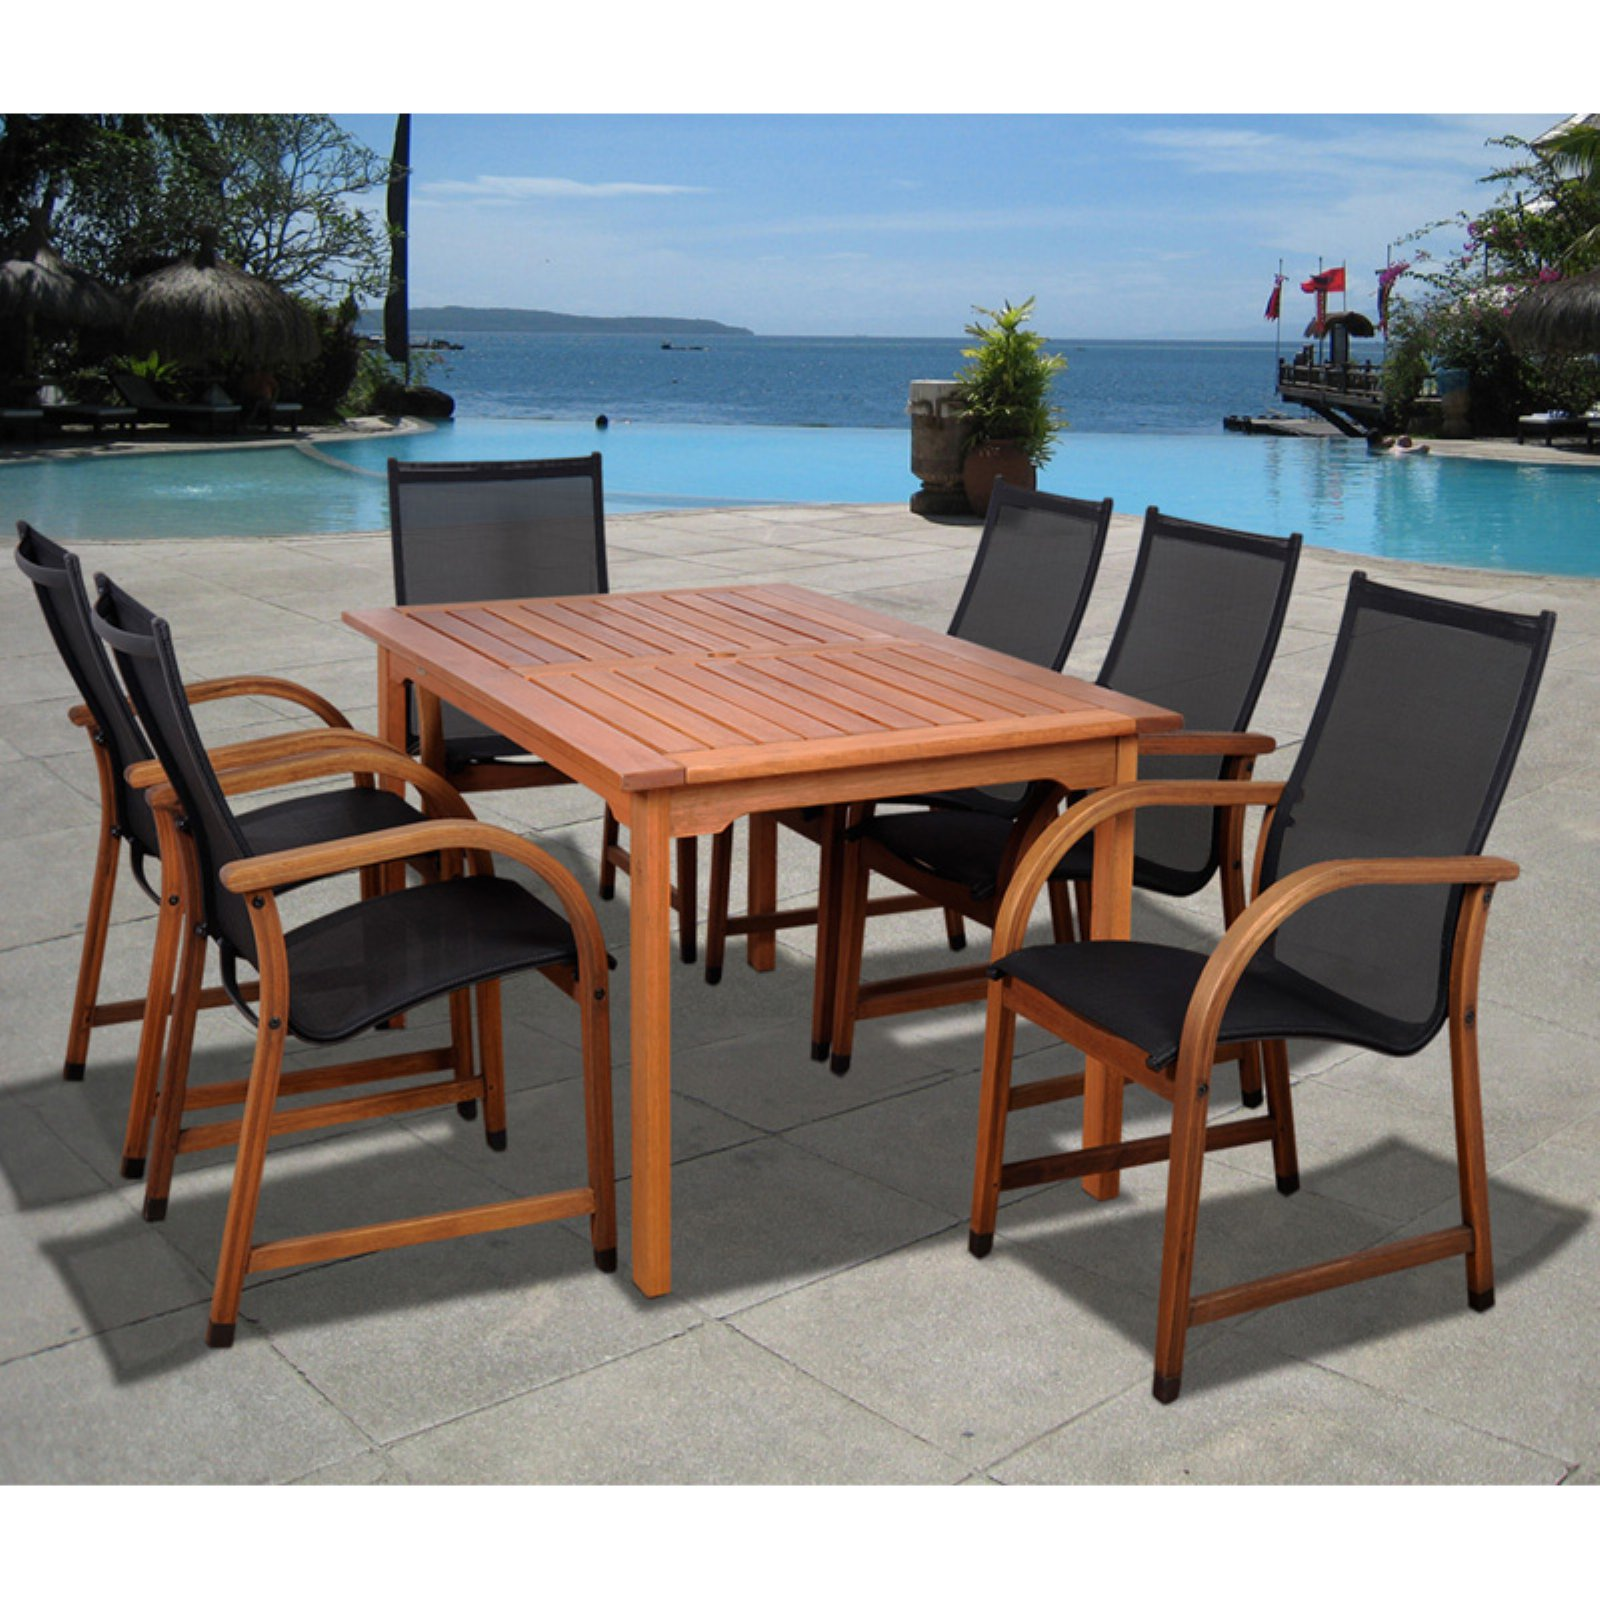 Bahamas 7-Piece Eucalyptus Rectangular Patio Dining Set